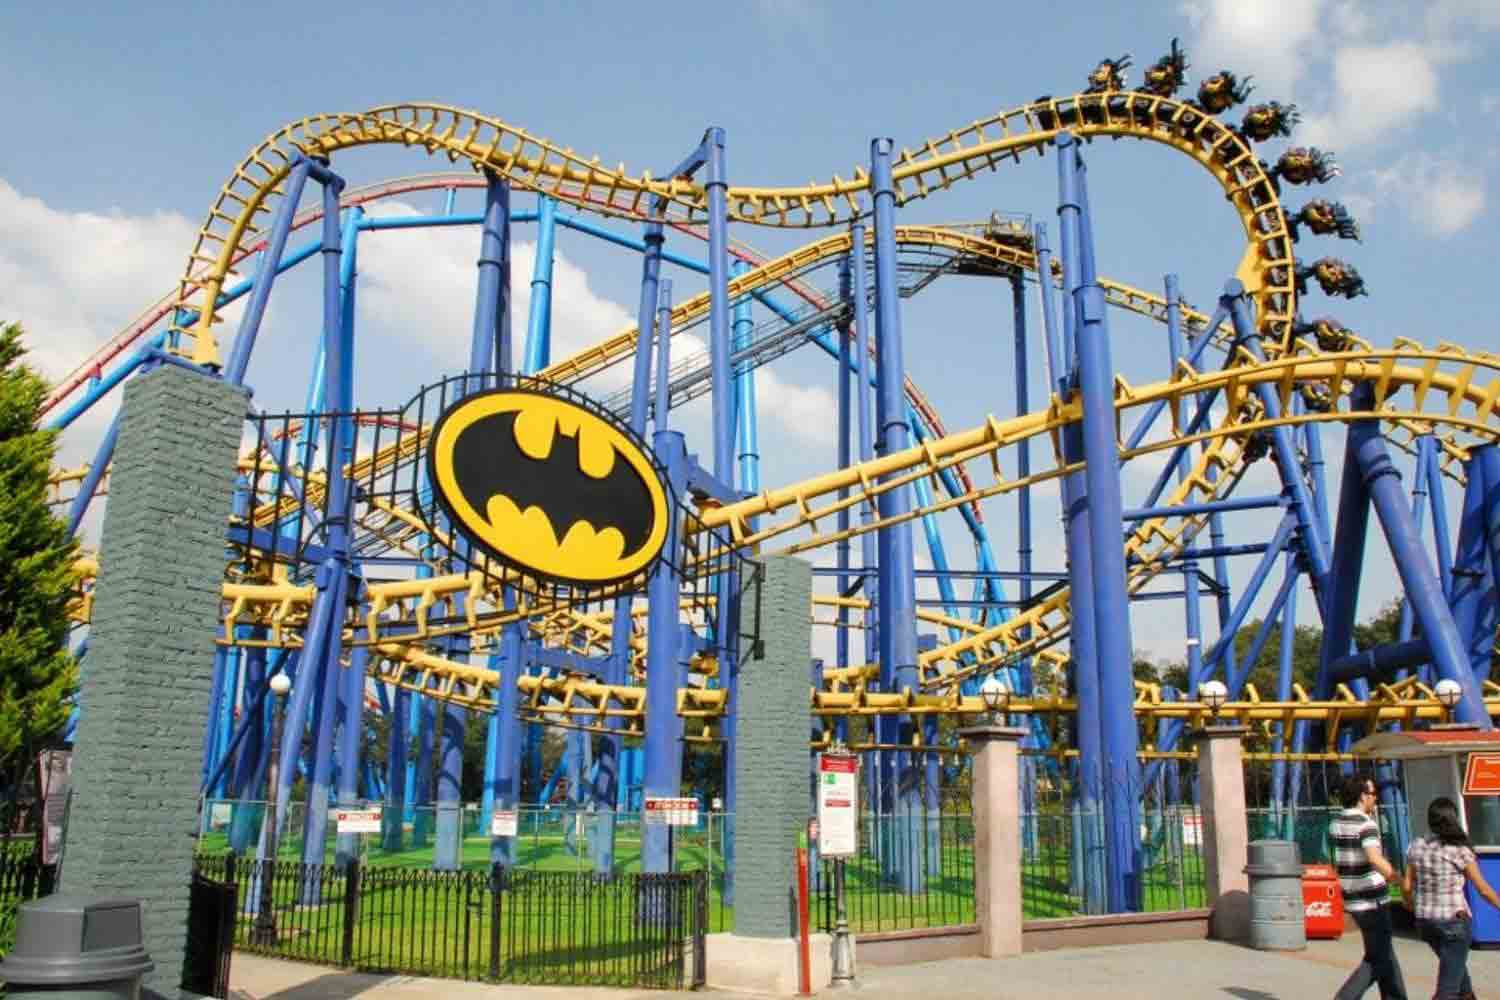 theme parks Hang on to your hat massachusetts theme parks are perfect for a day out with the  family, whether you want a high-speed ride or a low-speed family farm.